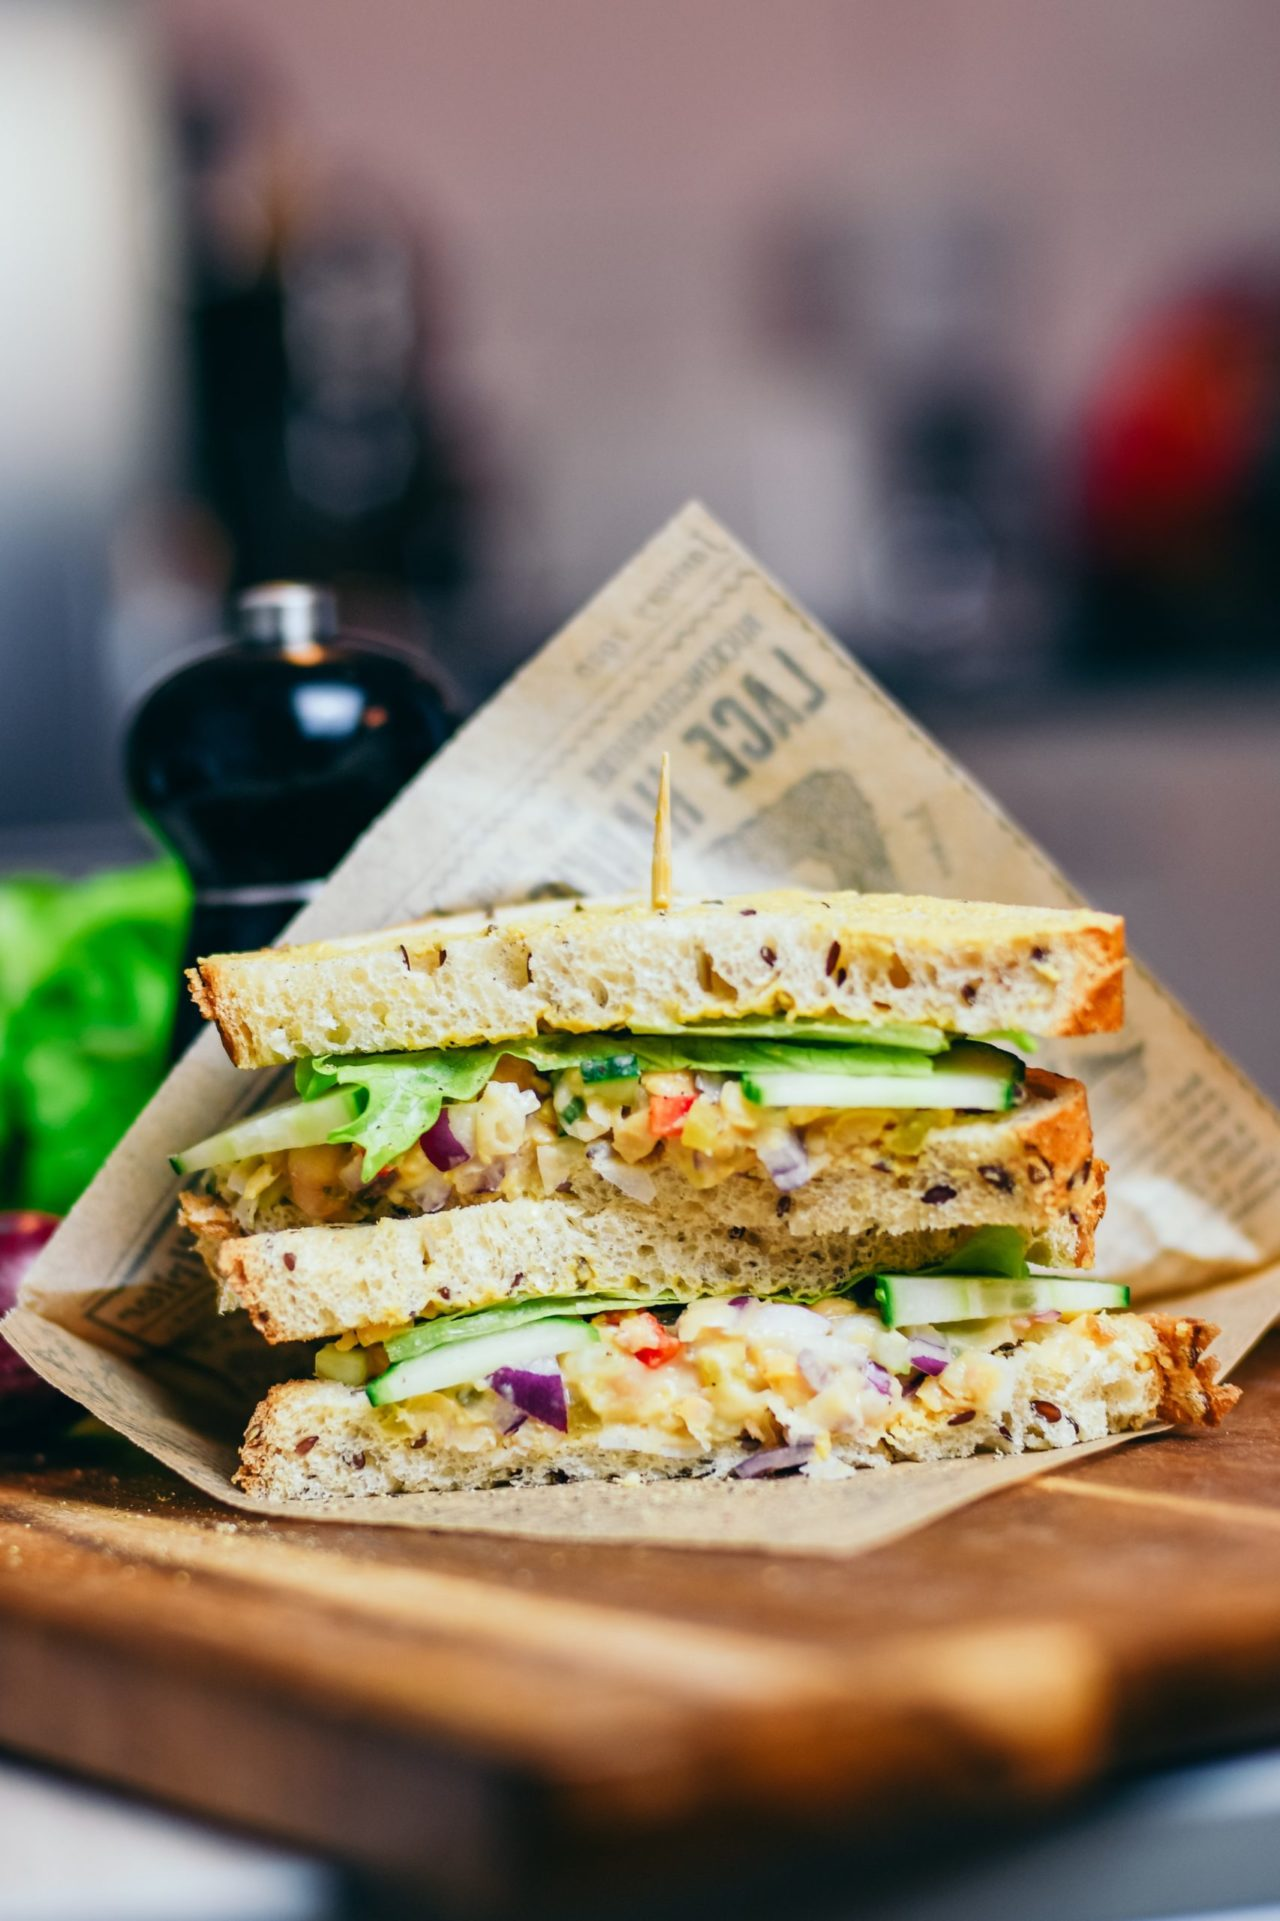 Friday Fast 5: Food & Beverage News to Know This Week